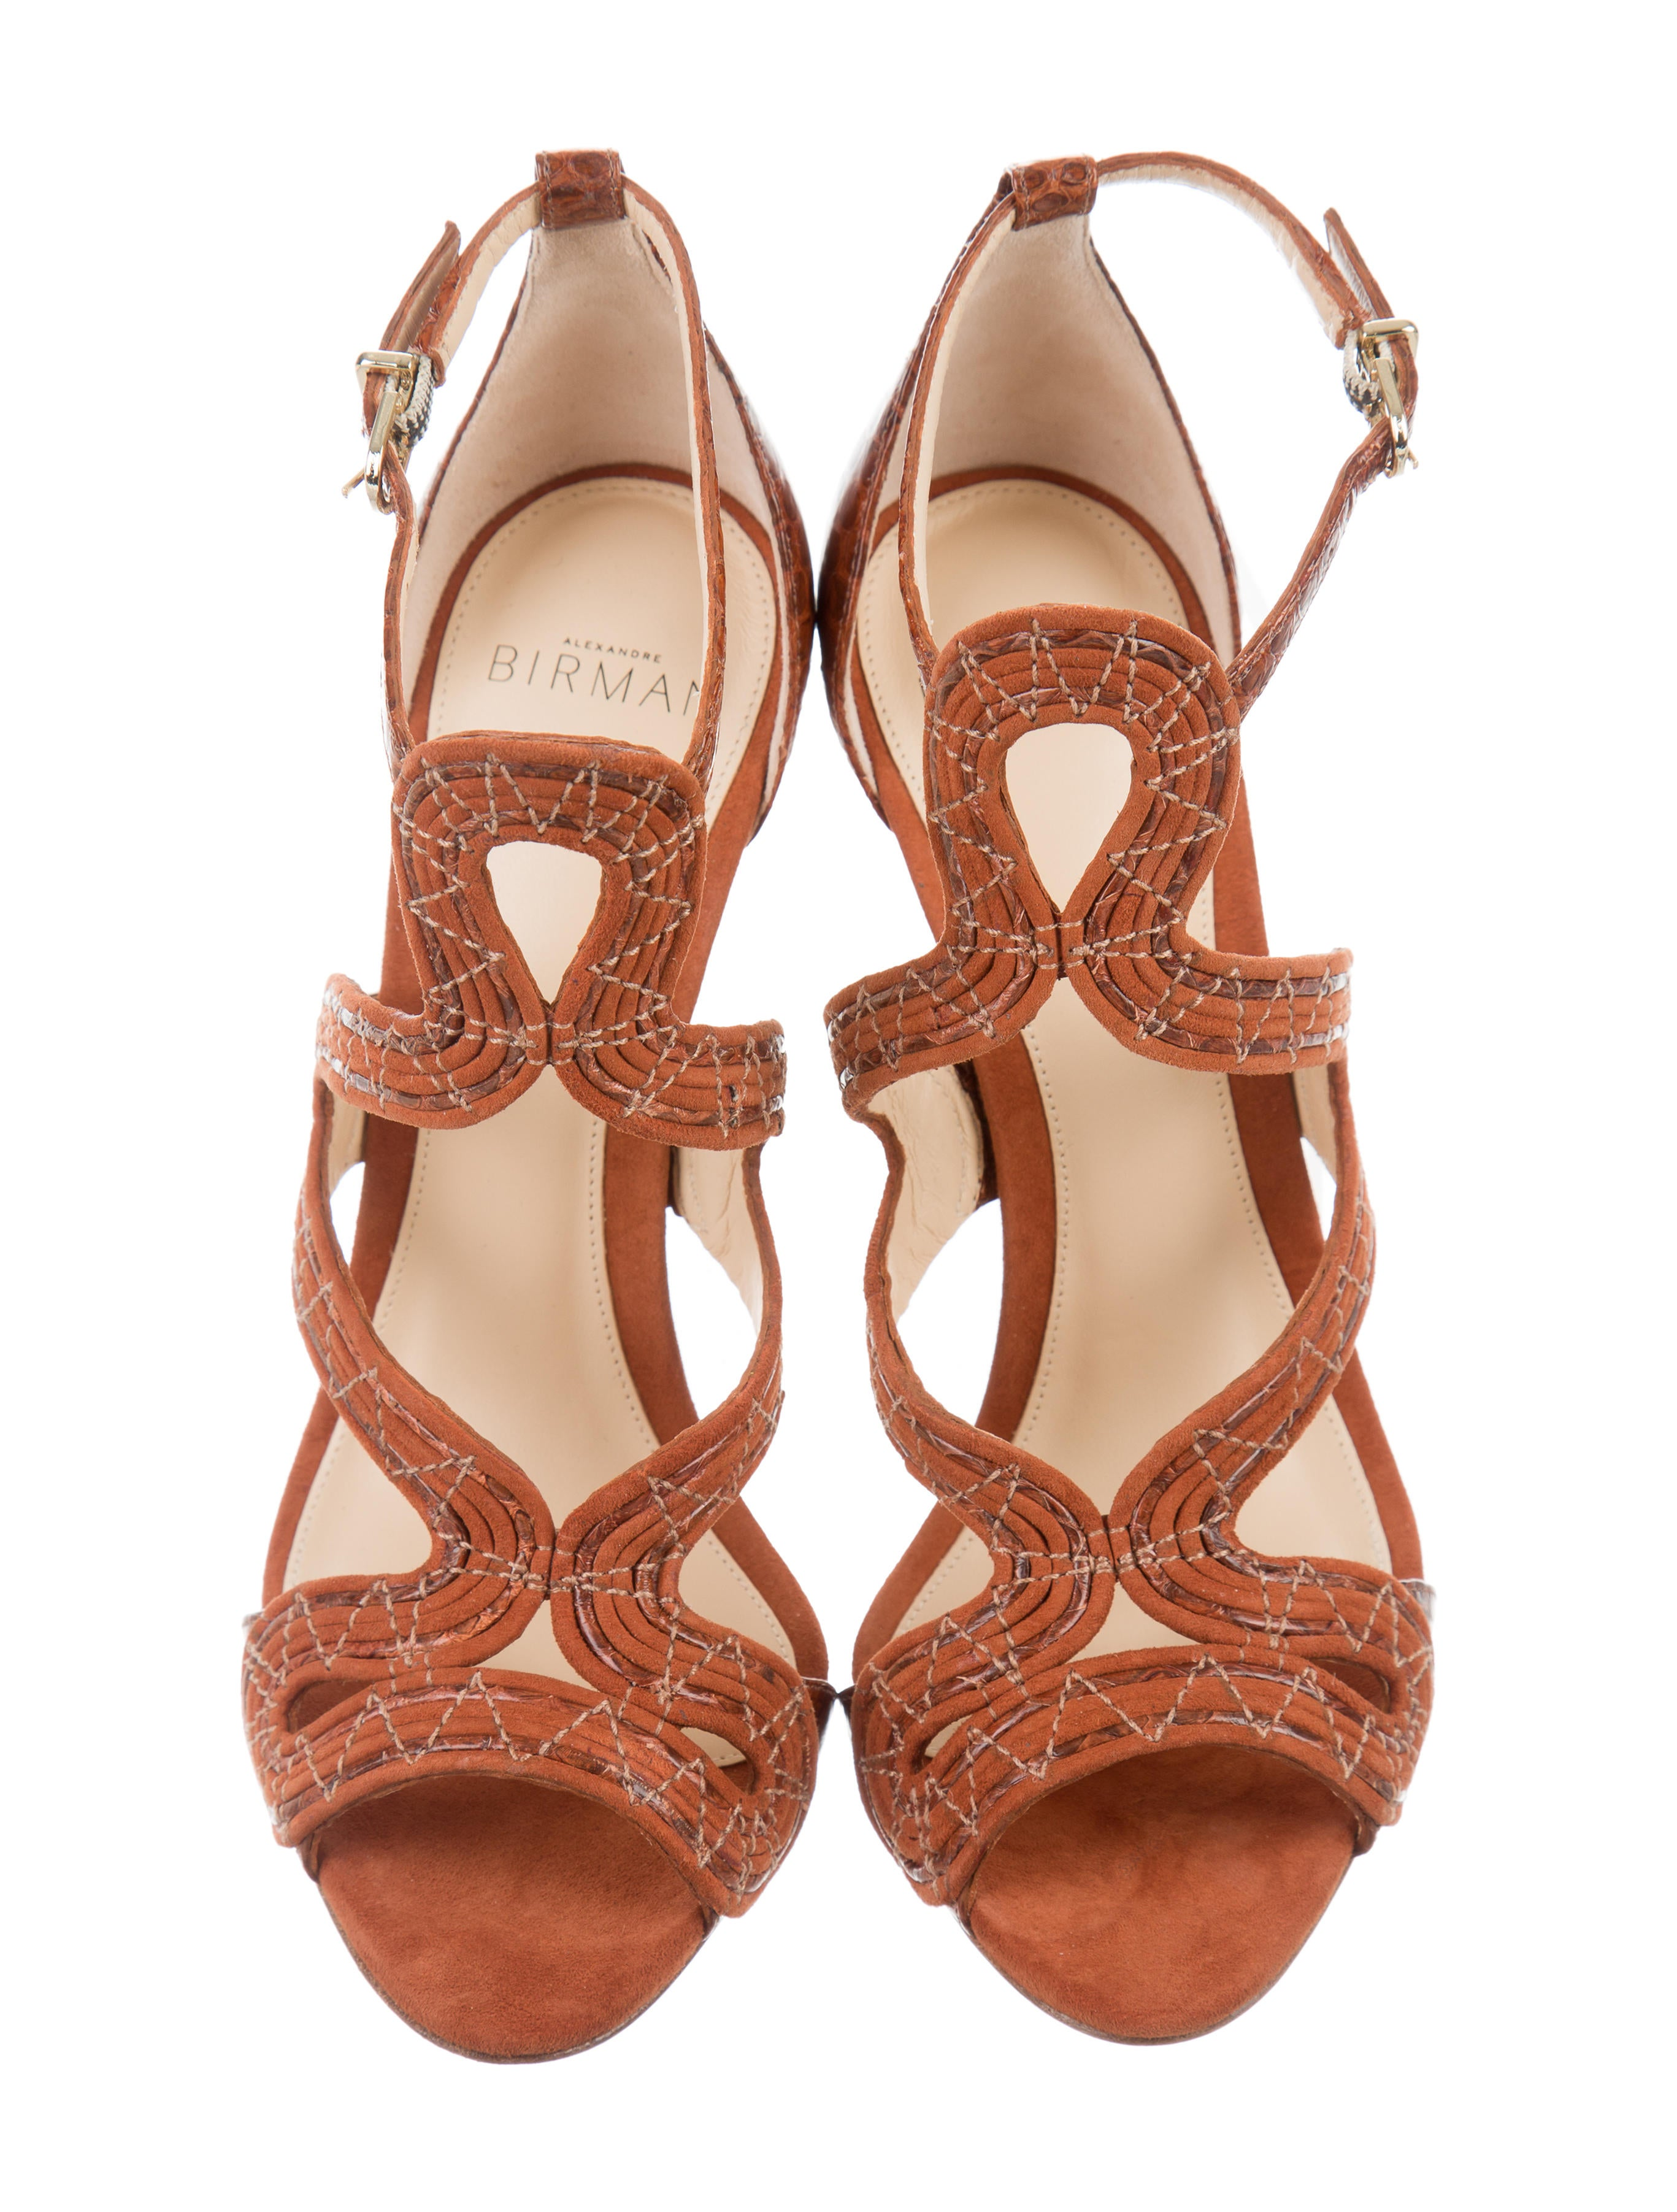 clearance 2014 new latest collections Alexandre Birman New Alice Suede Sandals w/ Tags for sale cheap online Ld6gjPRr3a